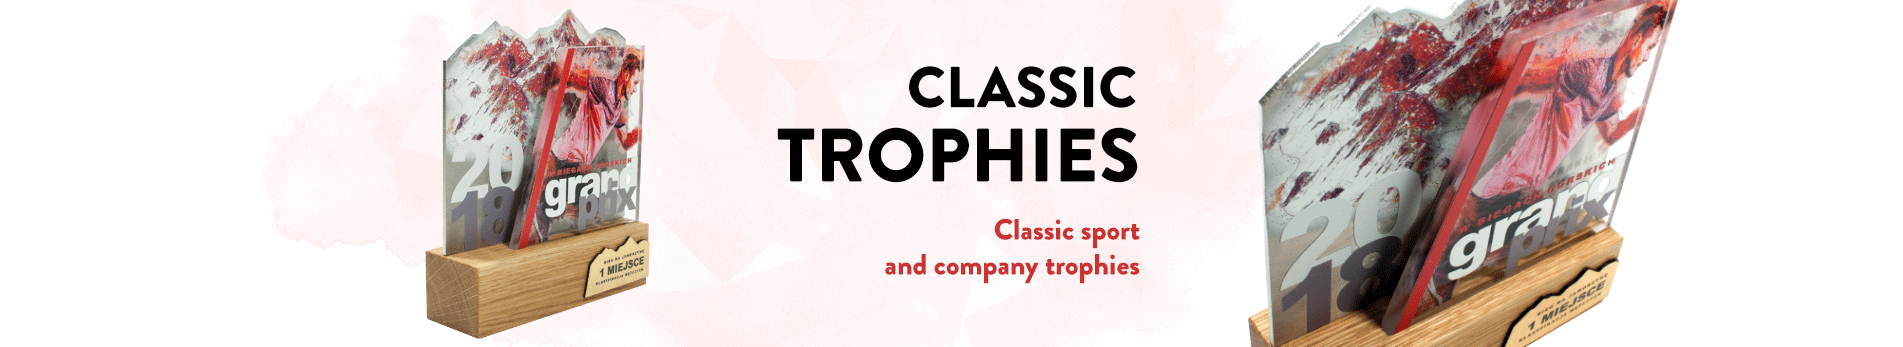 Classic sport and company trophies made by Modern Forms